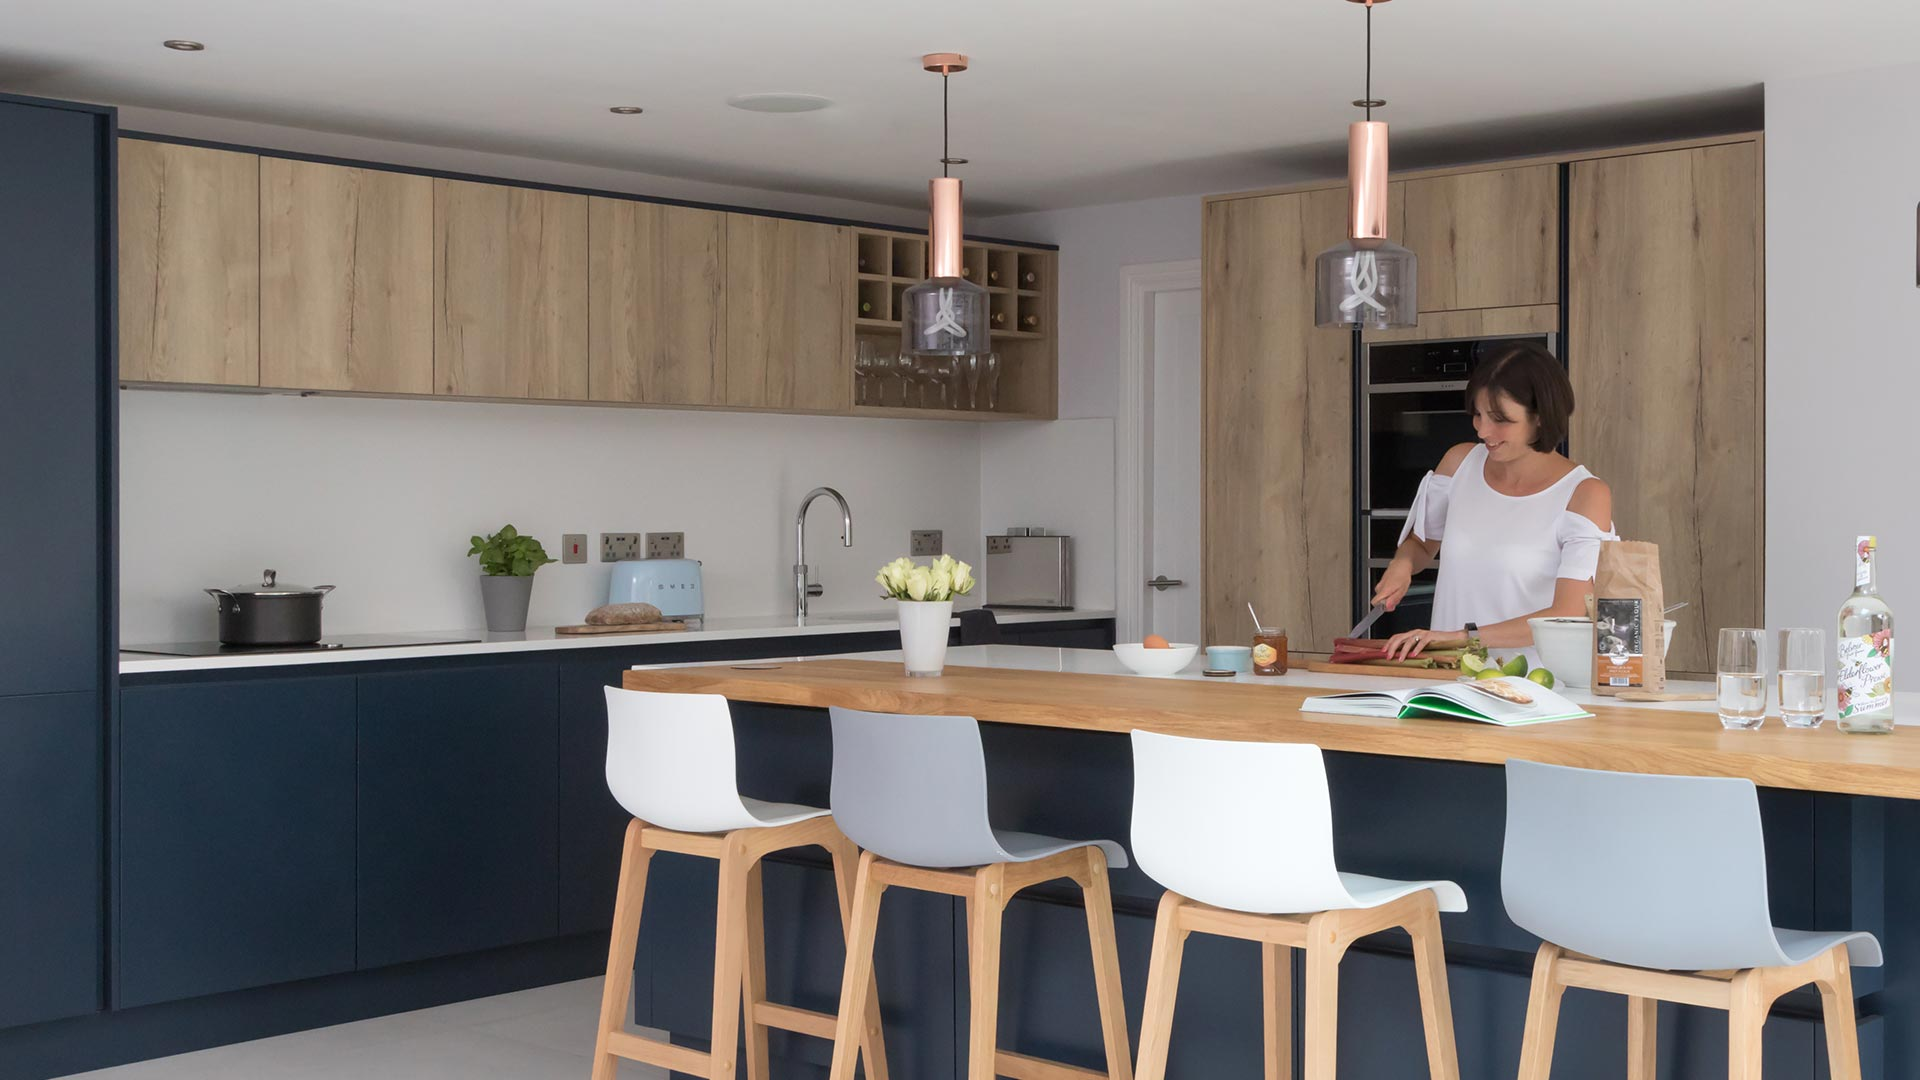 Masterclass Kitchens houzz review